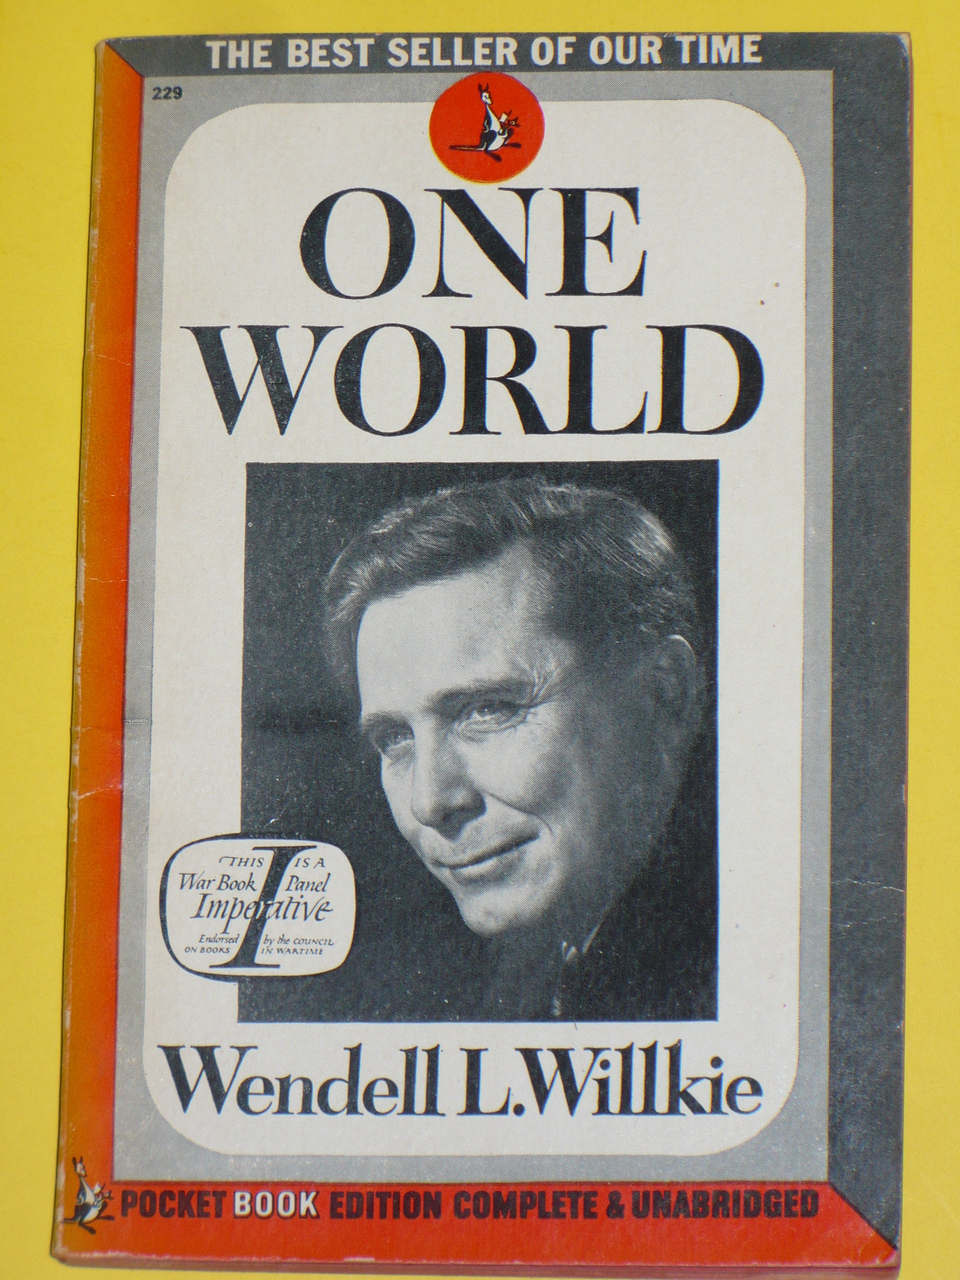 One World by Wendell Willkie. Image courtesy of Doerbooks.com.